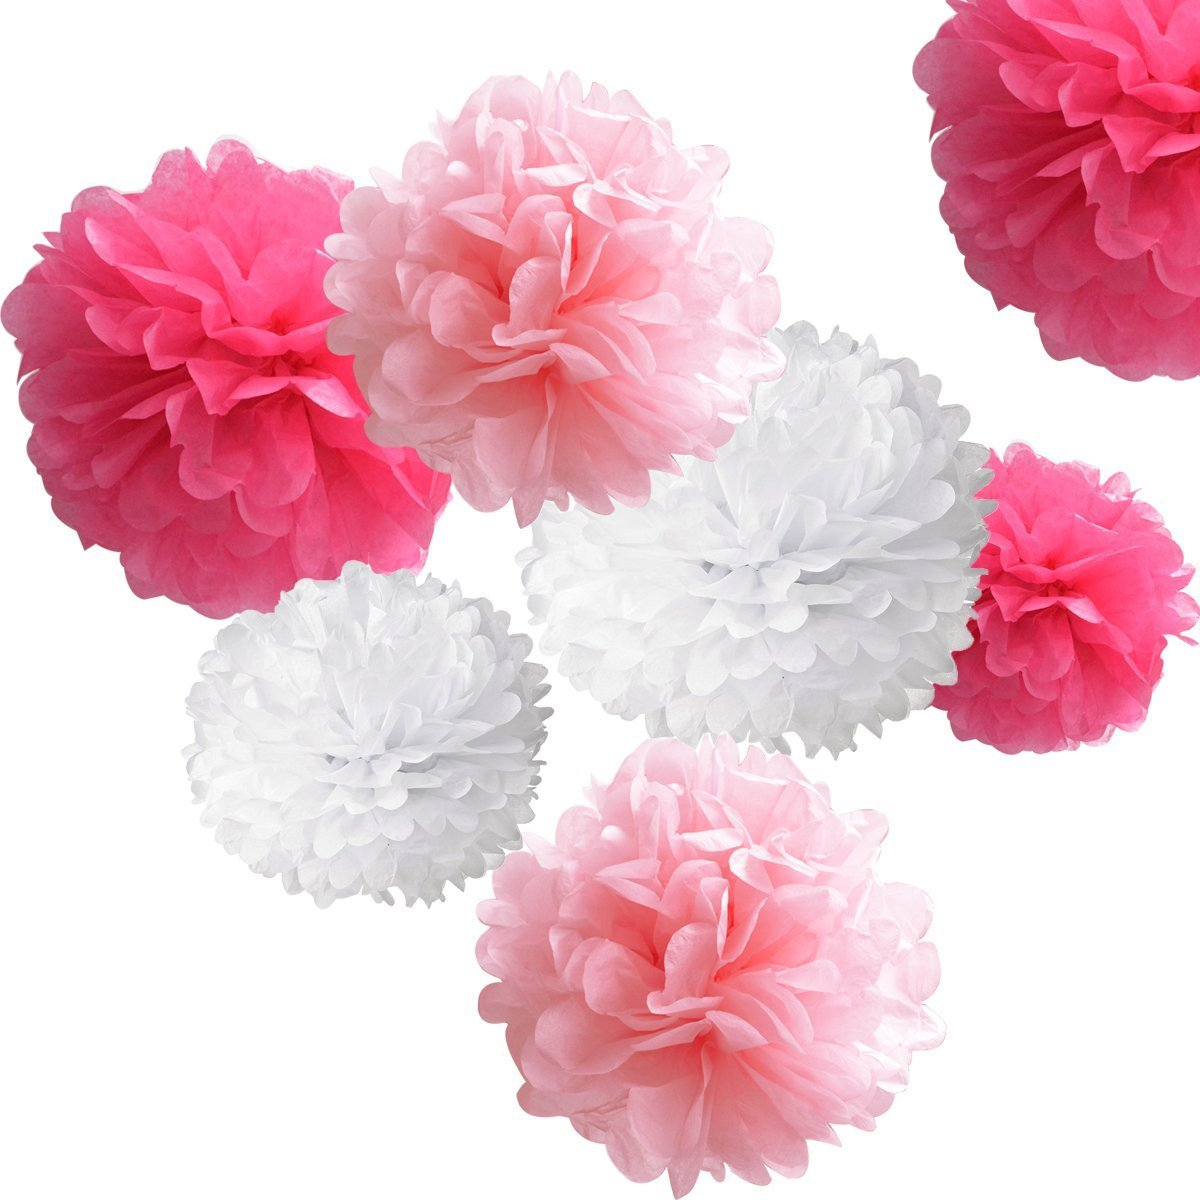 18pcs Tissue Hanging Paper Pom-poms, Marrywindix Flower Ball Wedding Party Outdoor Decoration Premium Tissue Paper Pom Pom Flowers Craft Kit (Pink& White)